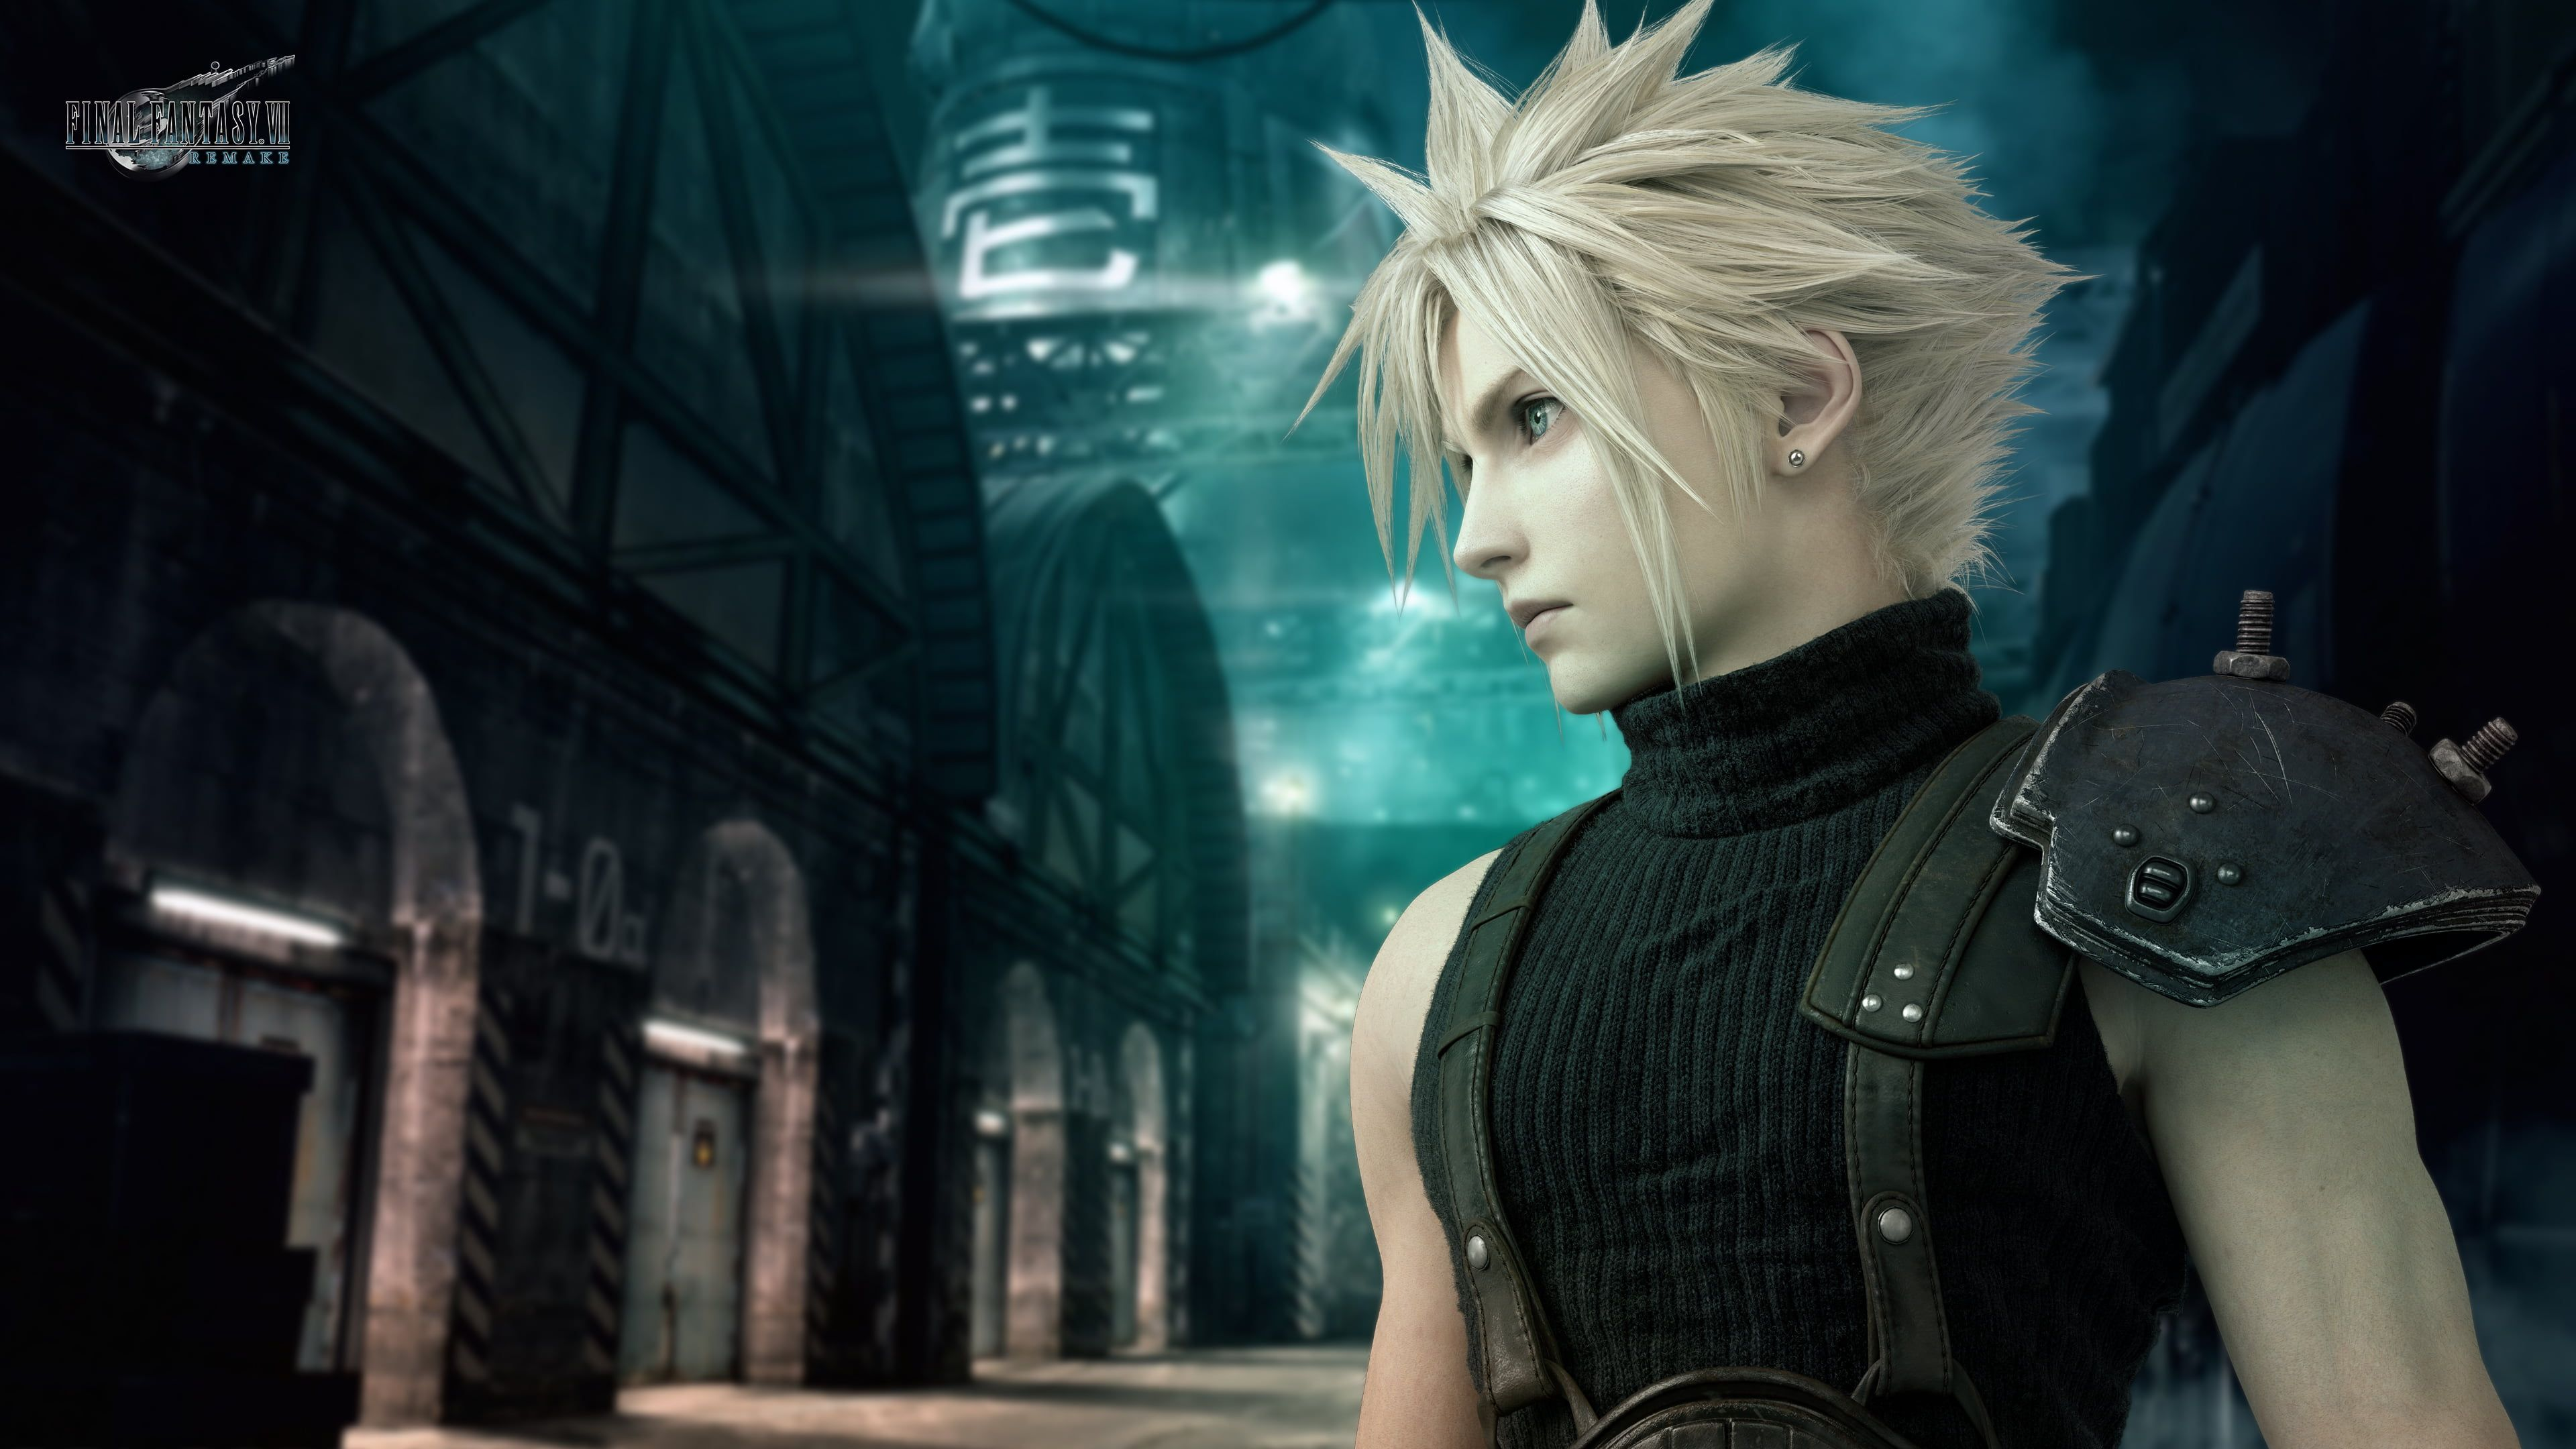 Final Fantasy Vii Remake Cloud Strife Final Fantasy Vii 4k Wallpaper Hdwallpaper Desktop In 2020 Final Fantasy Vii Cloud Final Fantasy Cloud Strife Cloud Strife